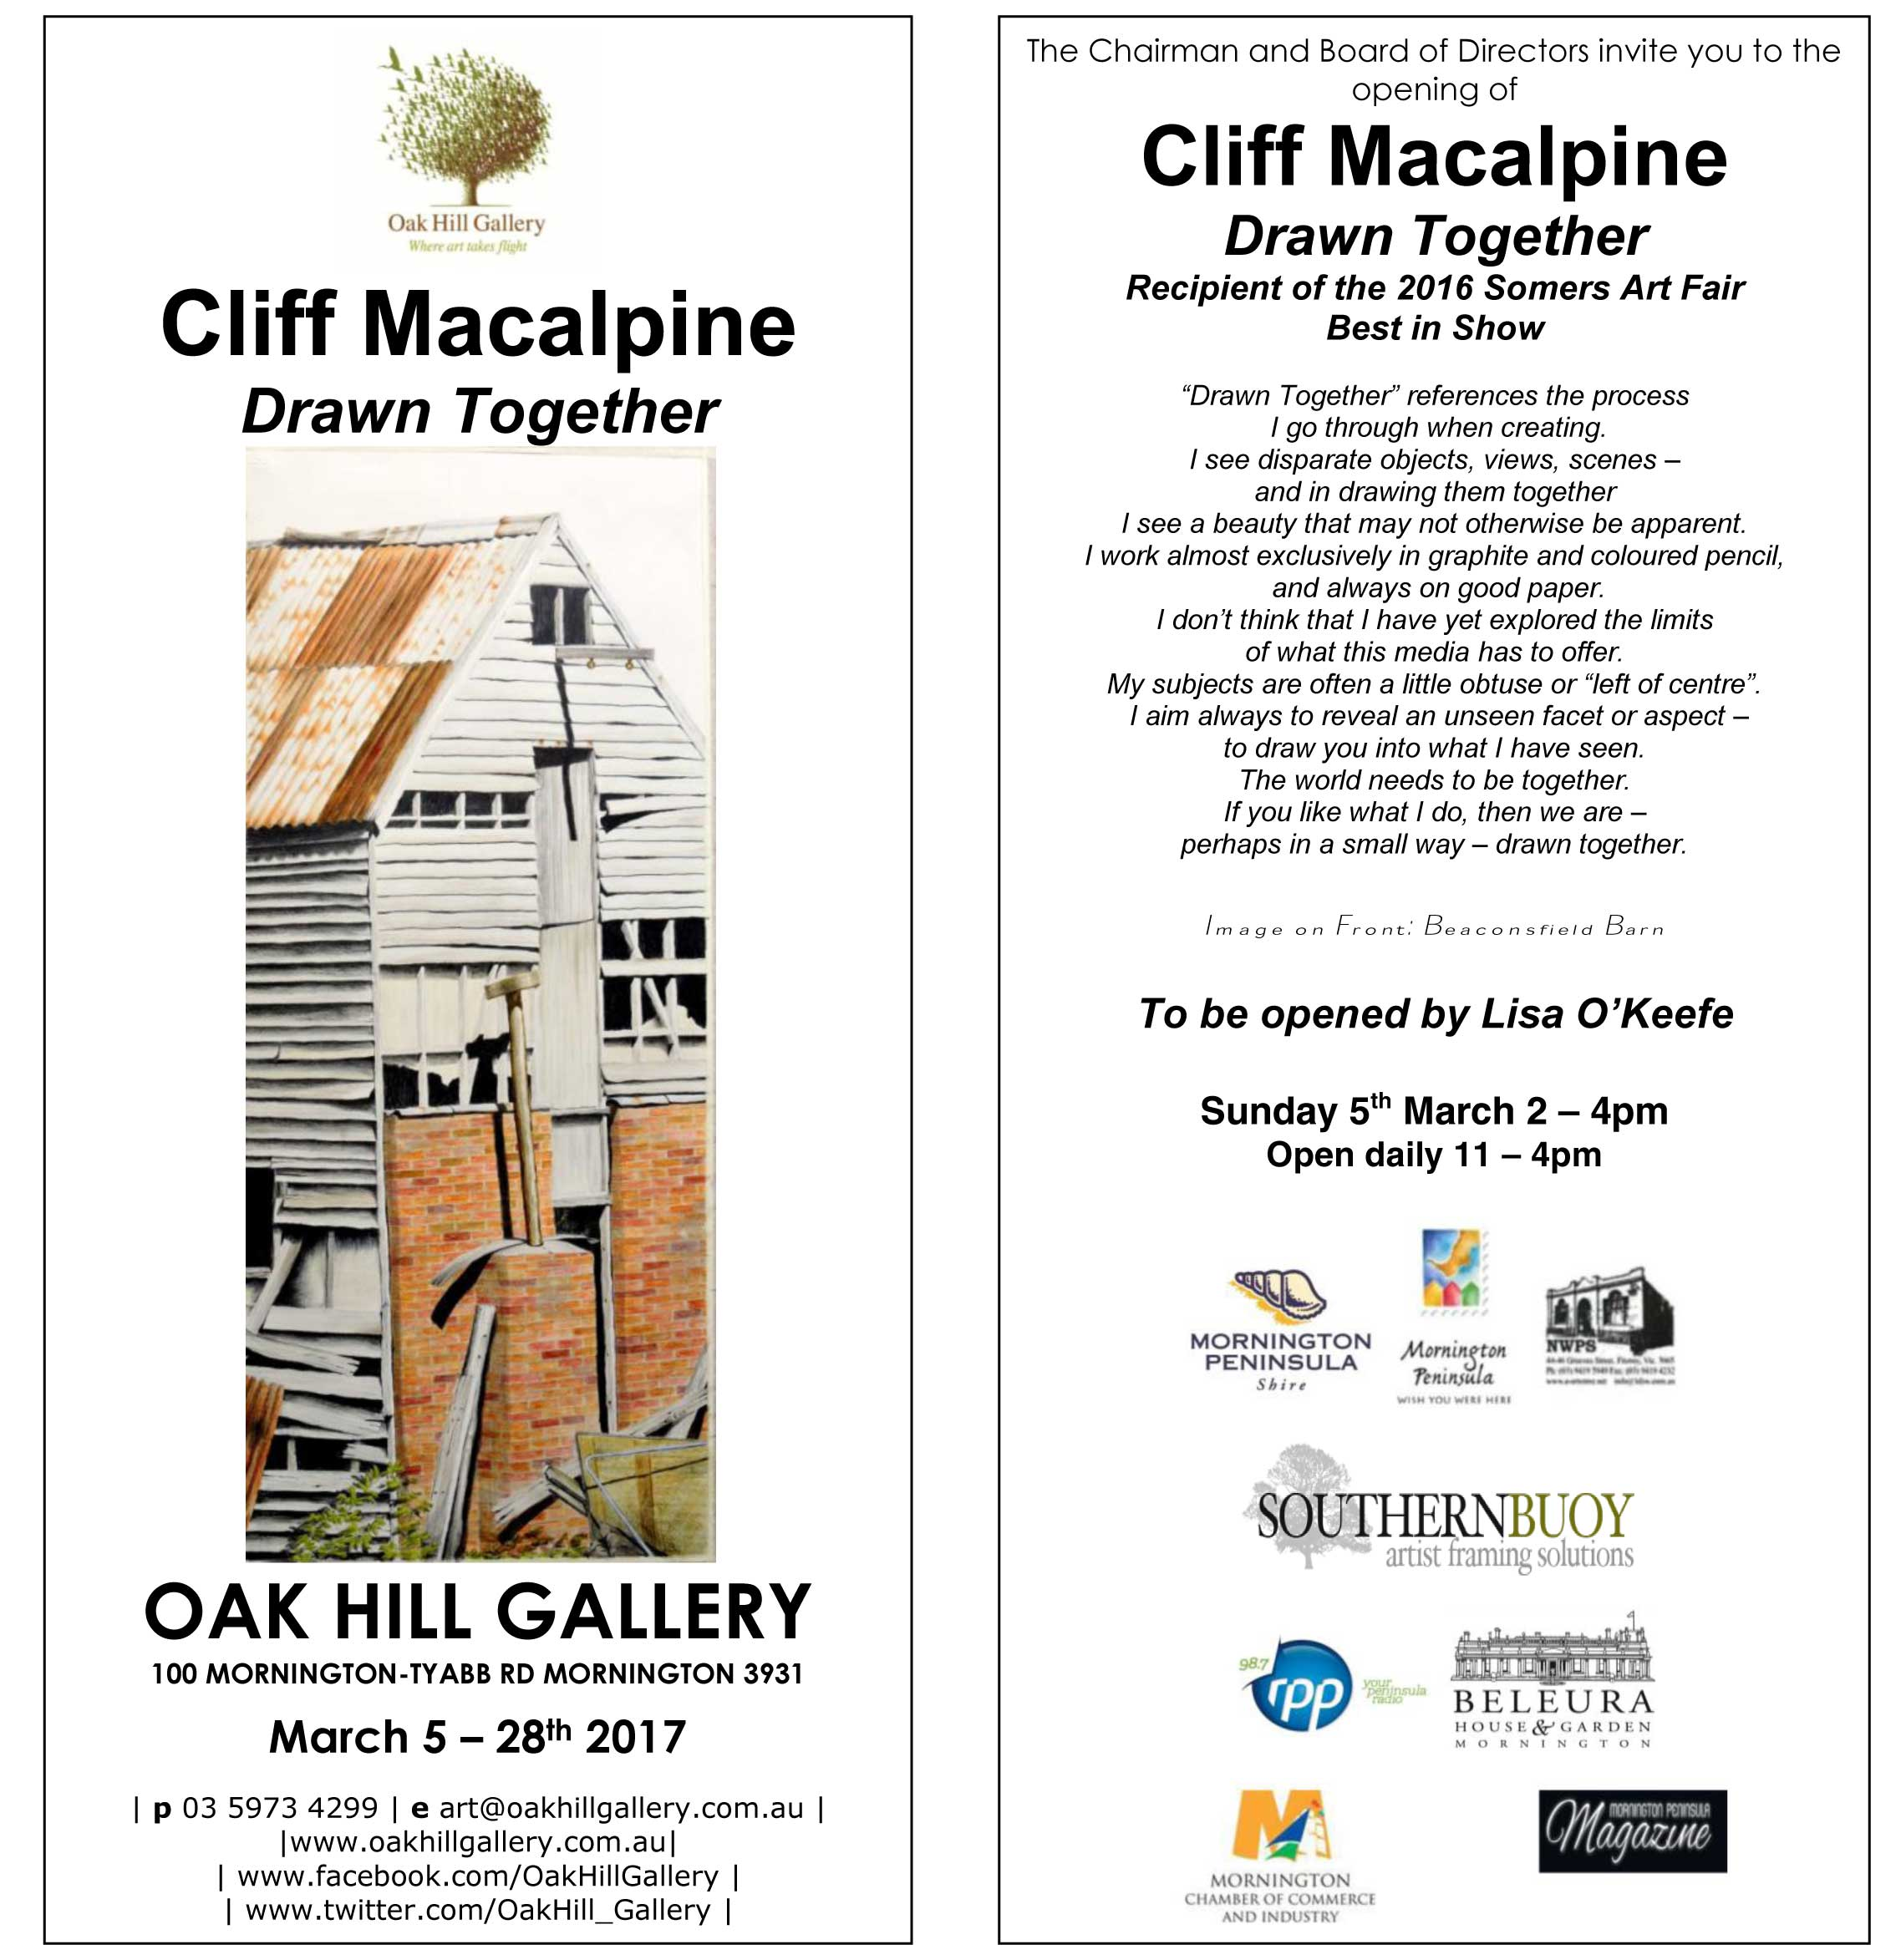 Cliff-Macalpine-invite-1